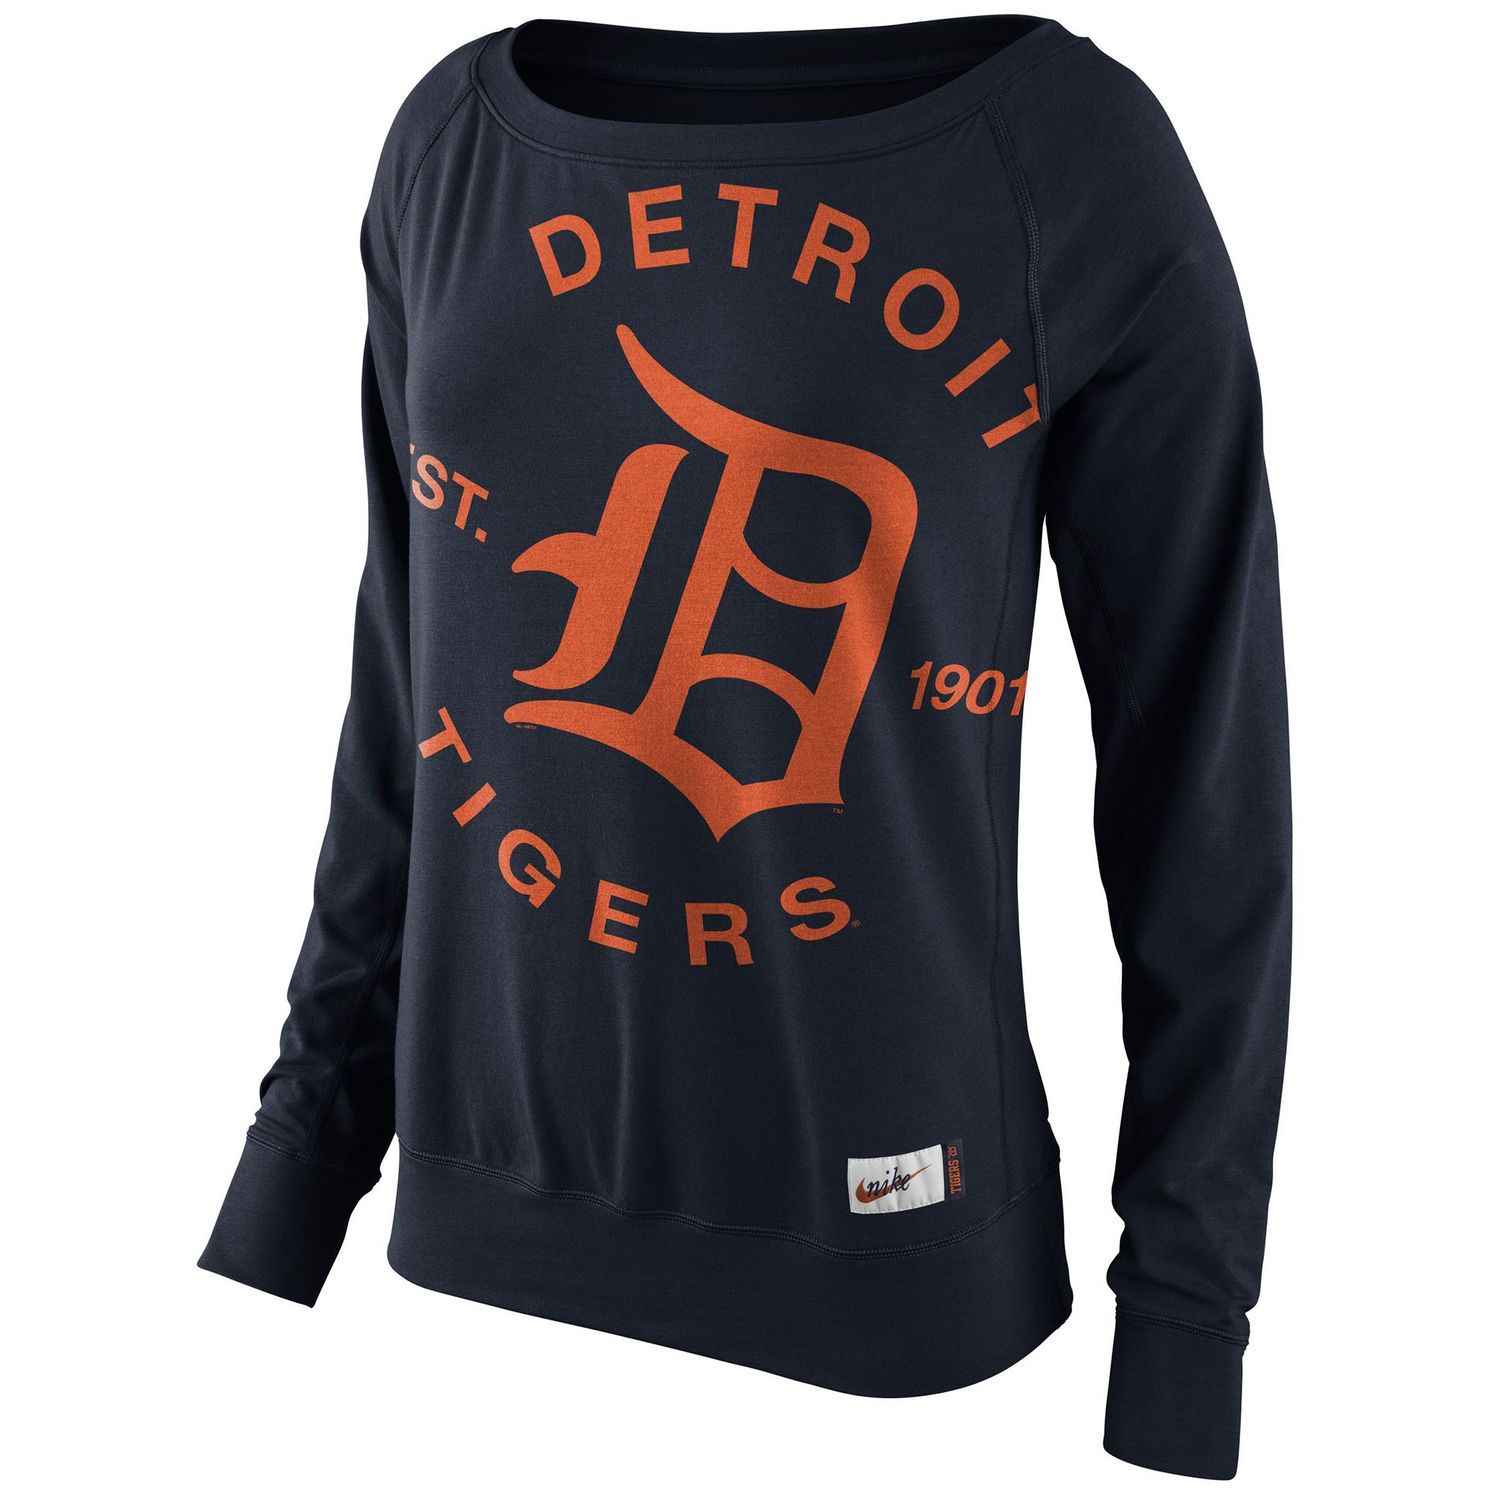 b6b3954a3 Women s Detroit Tigers Nike Navy Cooperstown Collection Washed Epic Crew  Fleece Sweatshirt